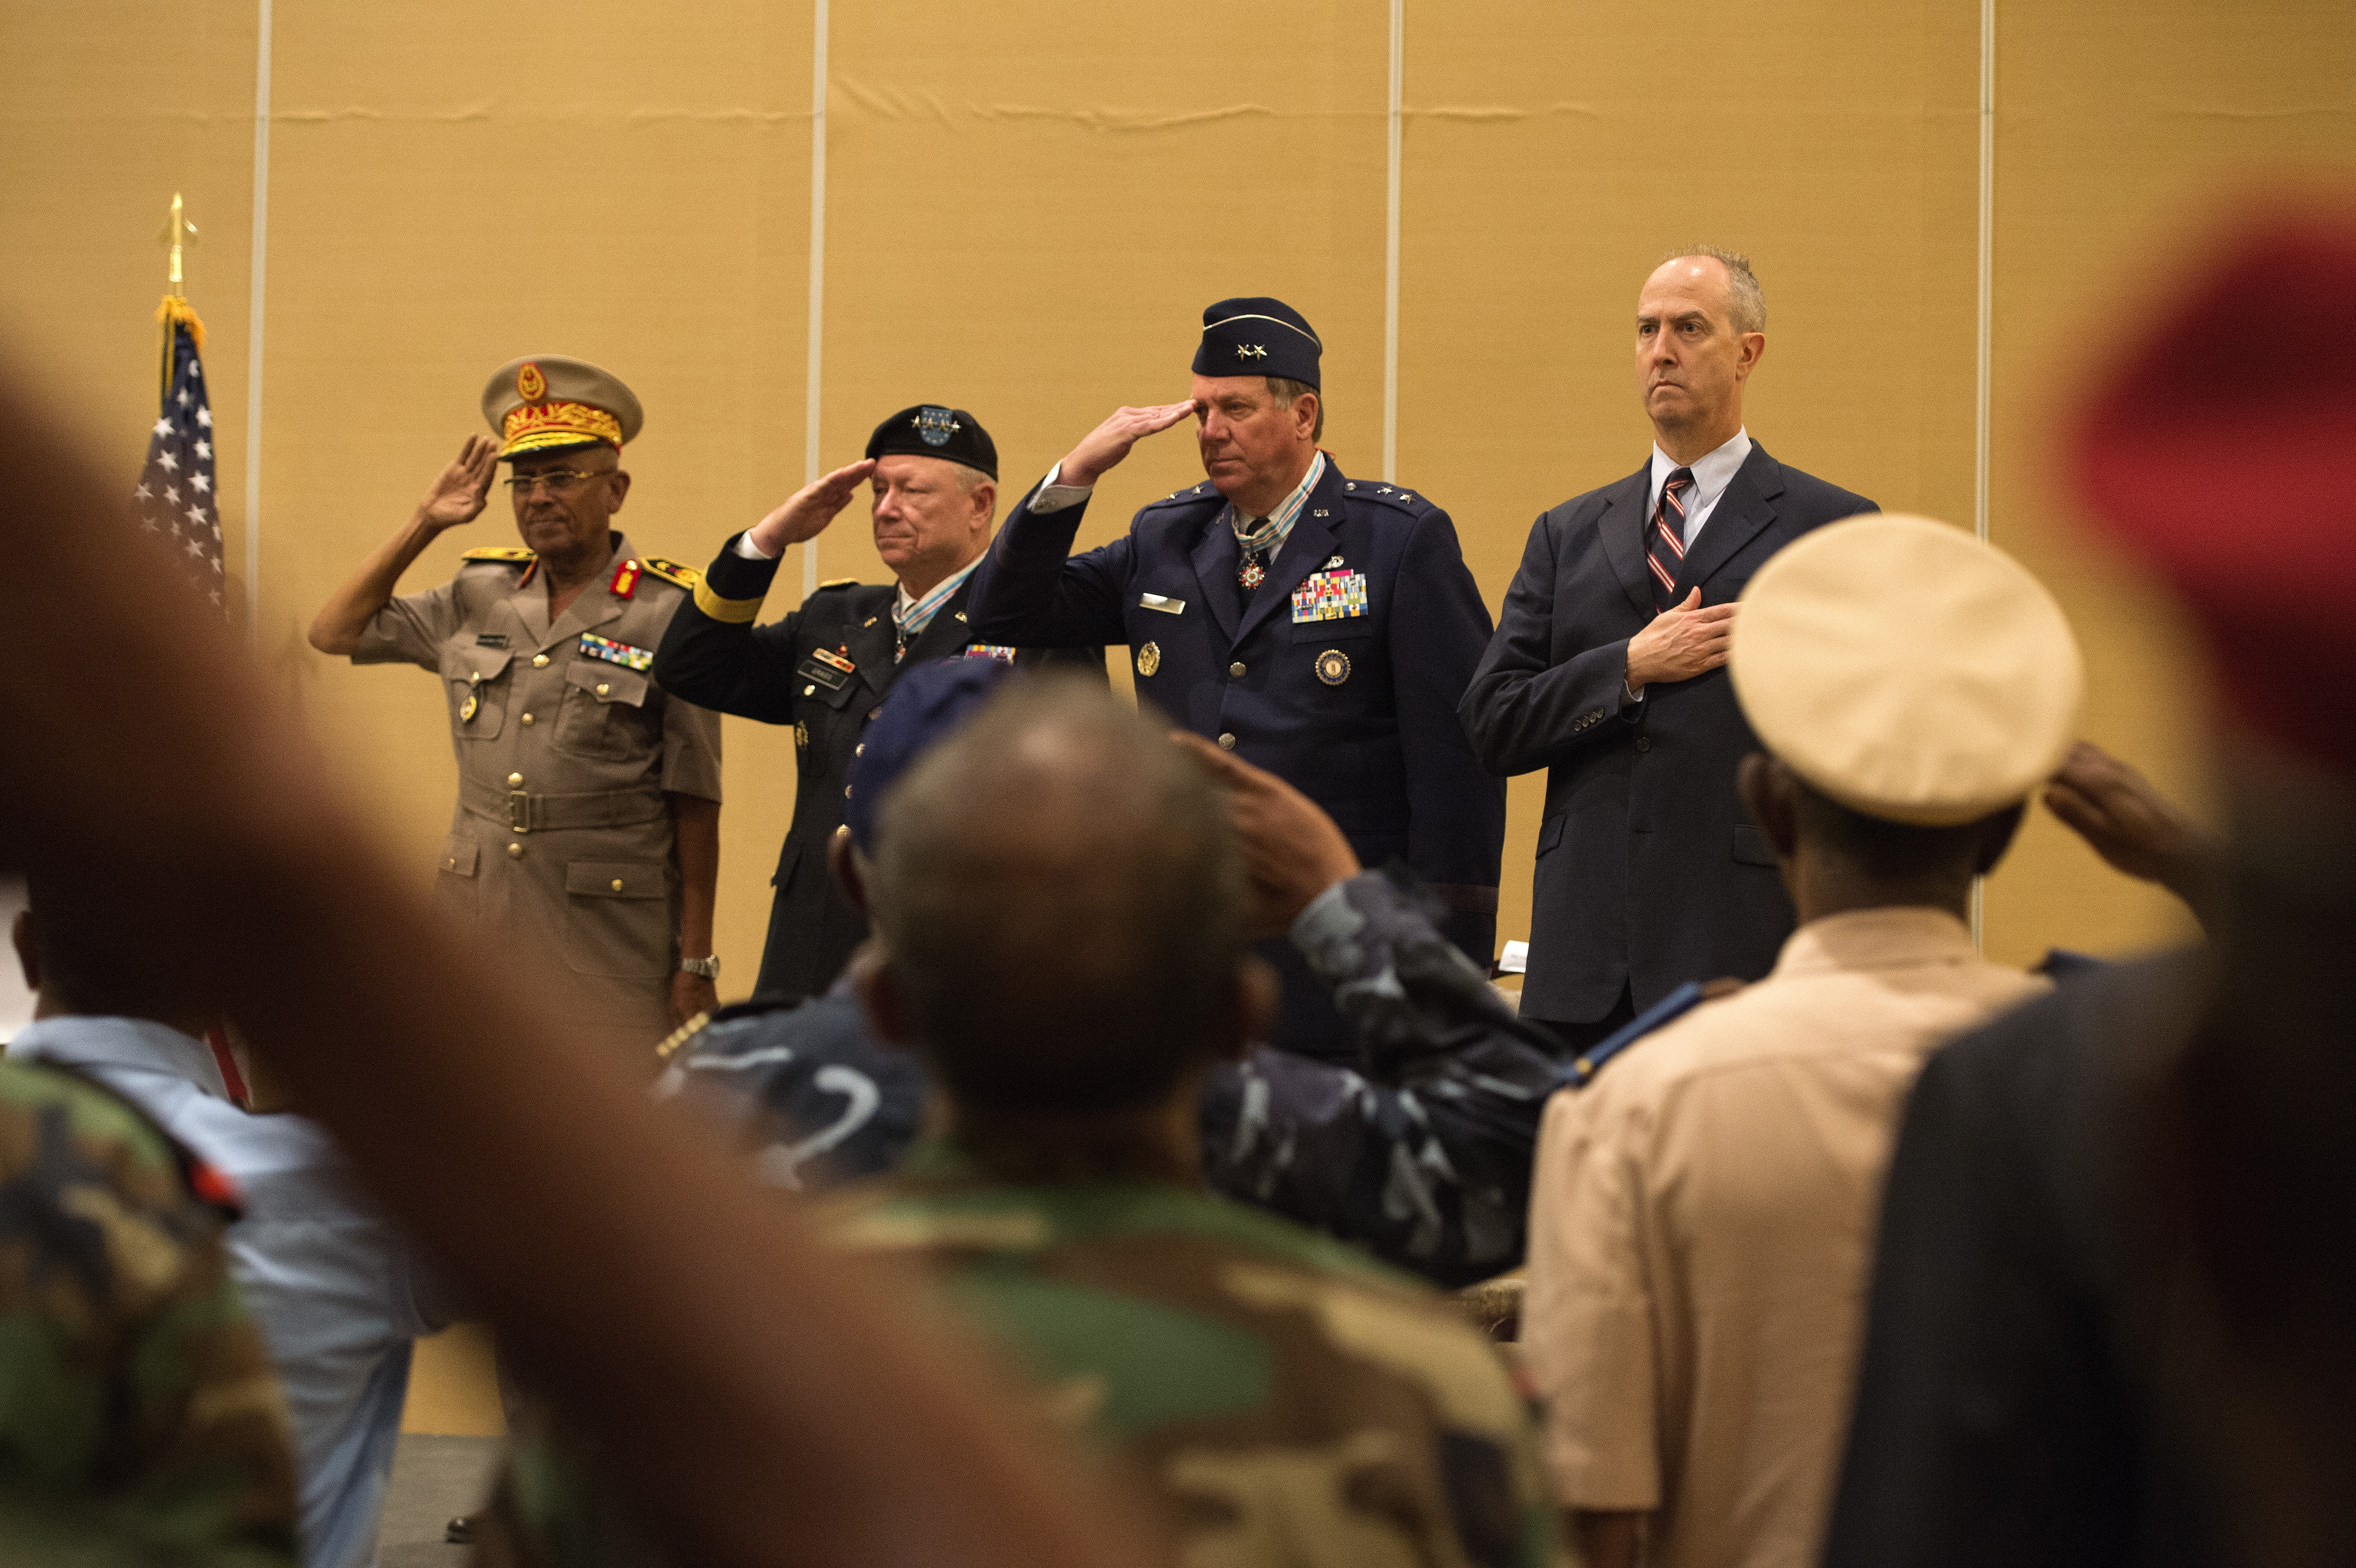 From left, Maj. Gen. Zakaria Cheik Ibrahim, Djiboutian Armed Forces chief of defense, National Guard Bureau Joint Chief of Staff Gen. Frank Grass, Maj. Gen. Edward Tonini, Kentucky National Guard adjutant general and U.S. Ambassador to Djibouti Thomas Kelly, stand during the American and Djiboutian national anthems during the Kentucky National Guard and the Republic of Djibouti State Partnership Program signing ceremony at the Kempinski Hotel, Djibouti, June 2, 2015. The SPP provides host countries with a skilled force capable of helping to train and develop the host nation's defenses and security, disaster response, crisis management, and interagency cooperation. (U.S. Air Force photo by Staff Sgt. Nathan Maysonet)